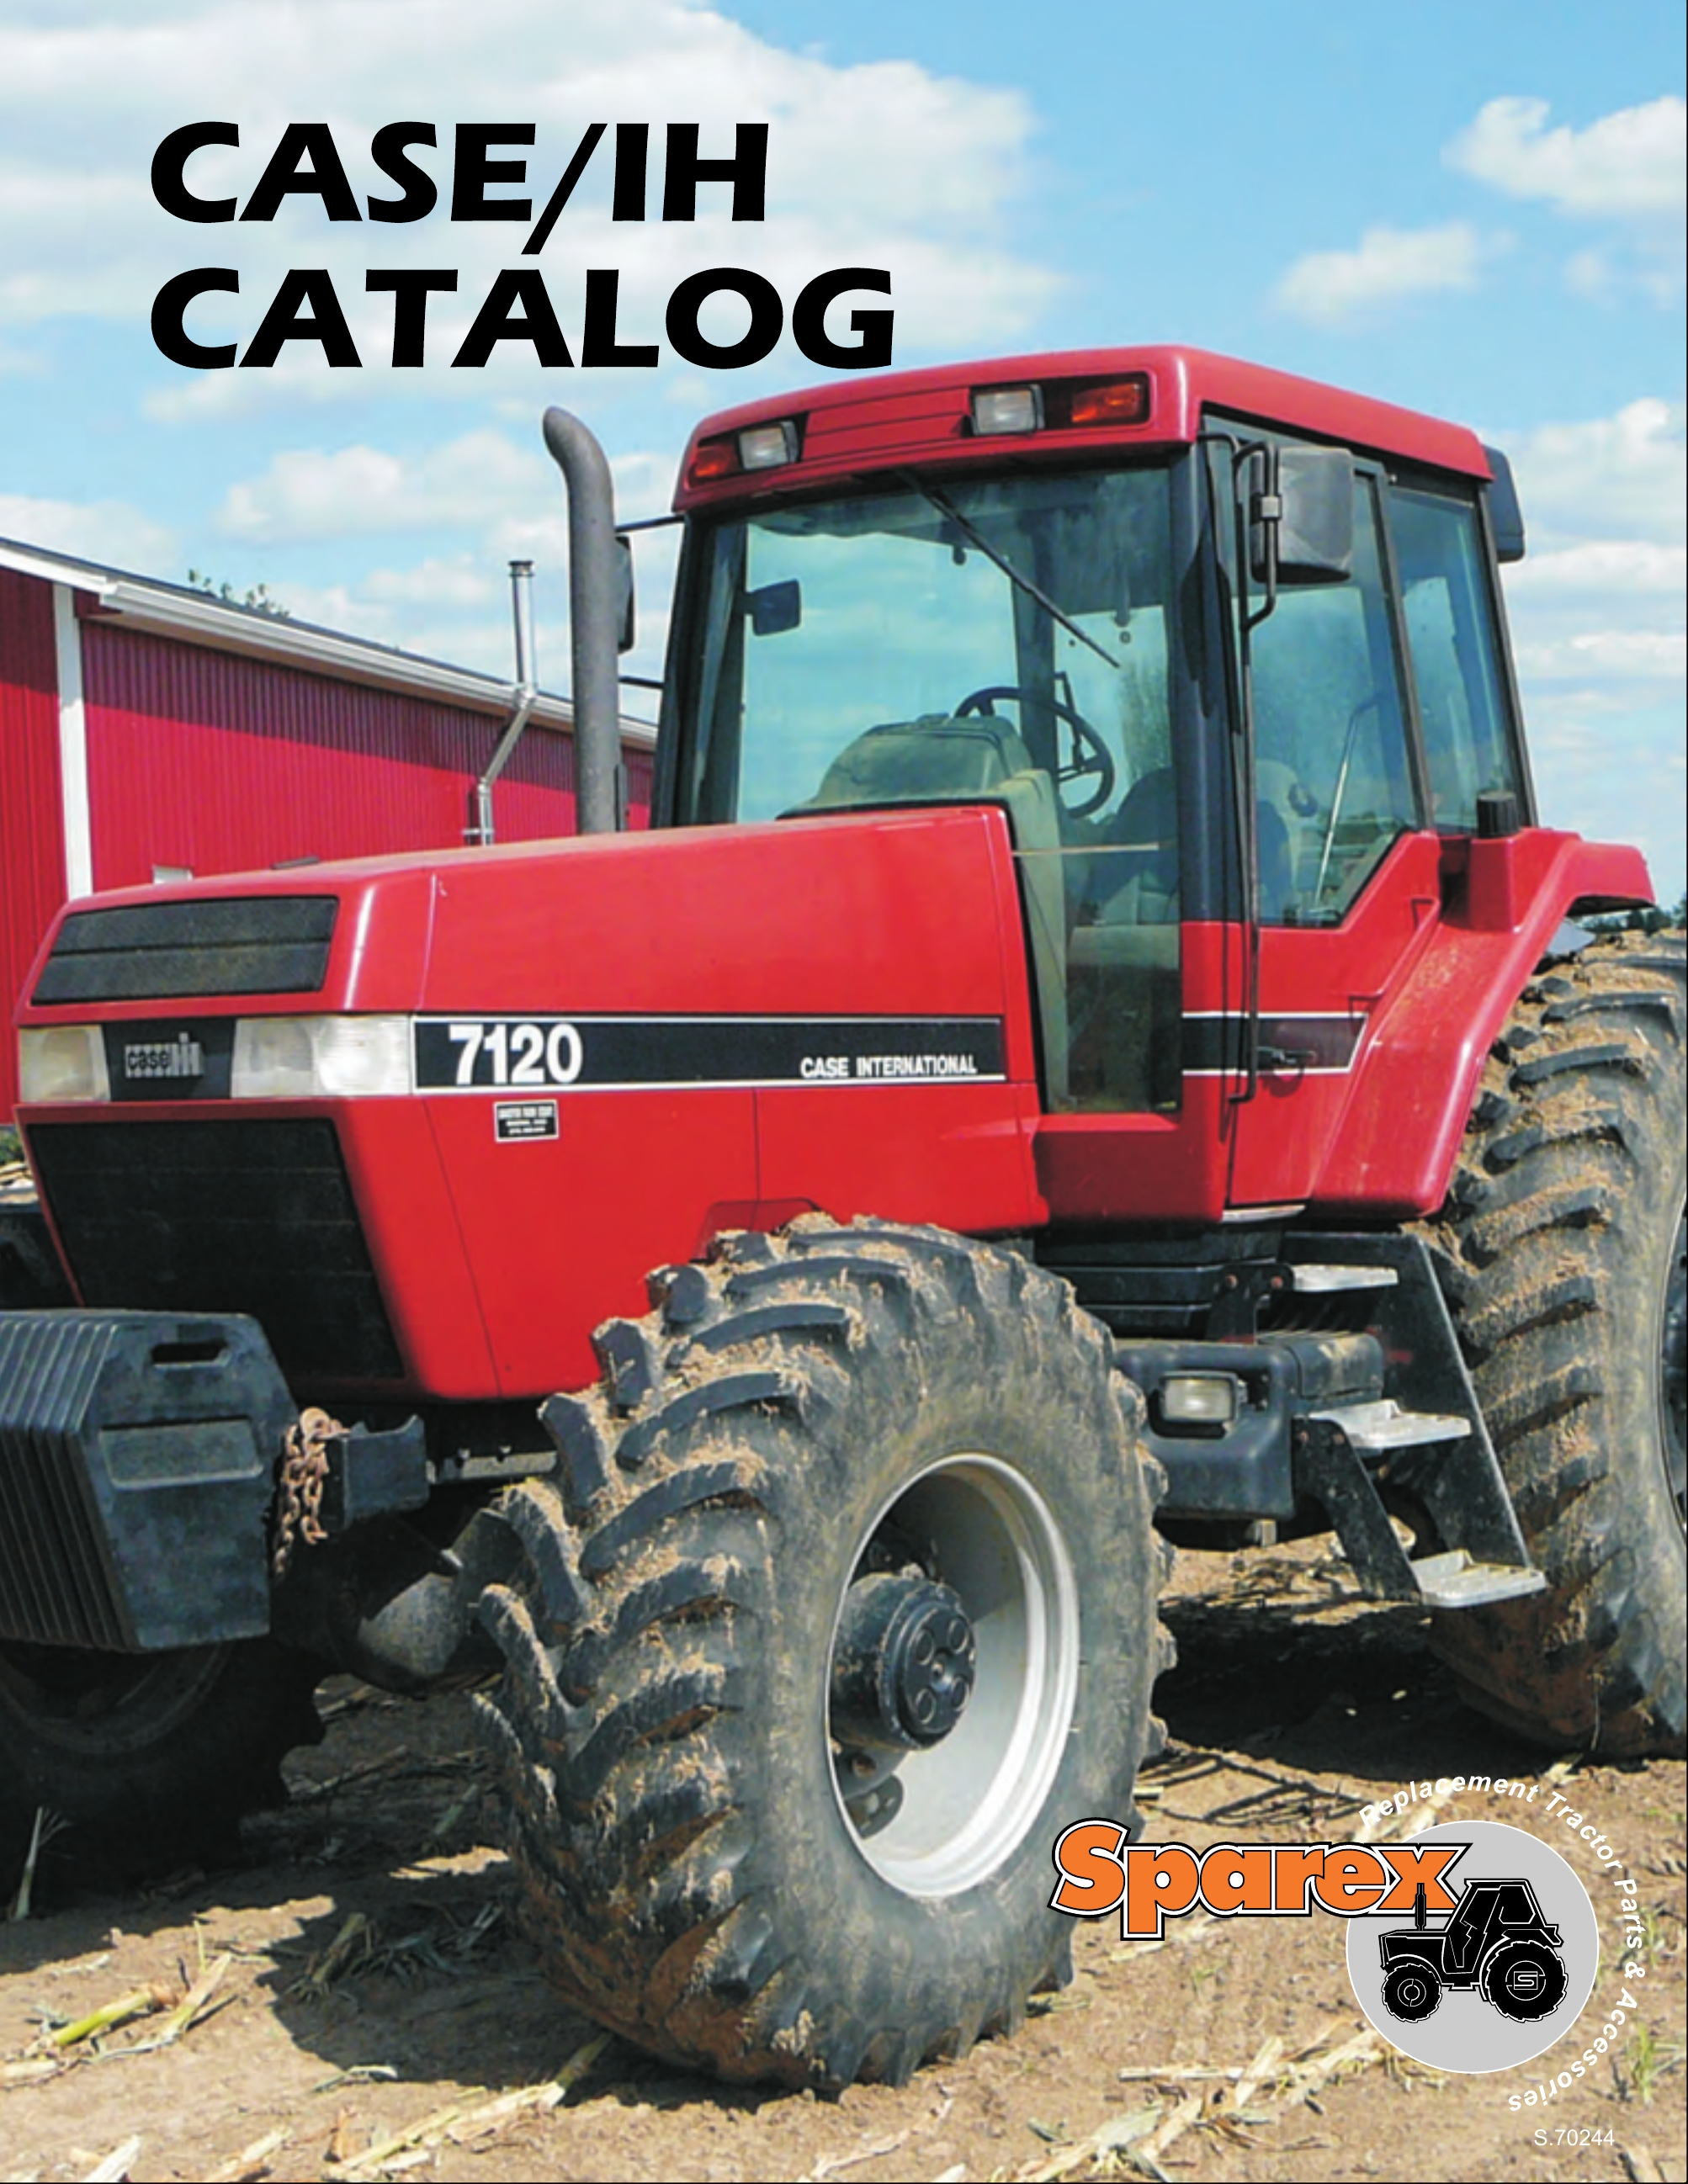 Sparex Catalogs on case tractor parts, case 885 tractor manual, case ih wiring schematic, case 580c backhoe parts diagram, case backhoe repair manual, 2290 case electrical diagram, case 444 wiring-diagram, case 4490 tractor, case tractor history, case tractor radio, case tractor schematic, case 580k backhoe parts diagram, case tractor exhaust, case ih tractors, case vac wiring-diagram, tractor hydraulics diagram, case tractor company, case 446 ignition switch diagram, case ih wiring diagrams,